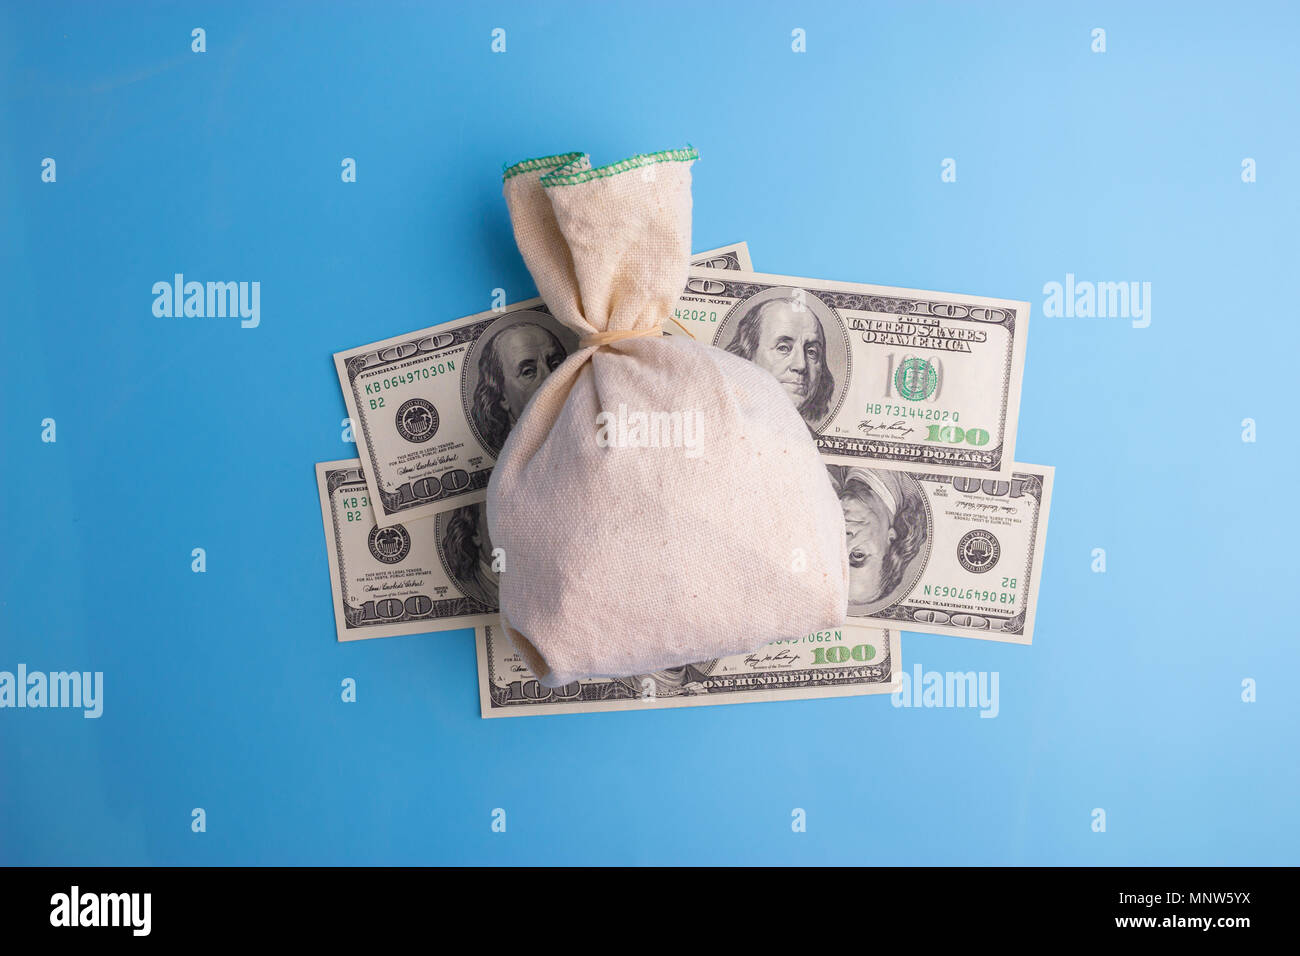 Money Bag, Currency, Paper Currency on blue background - Stock Image